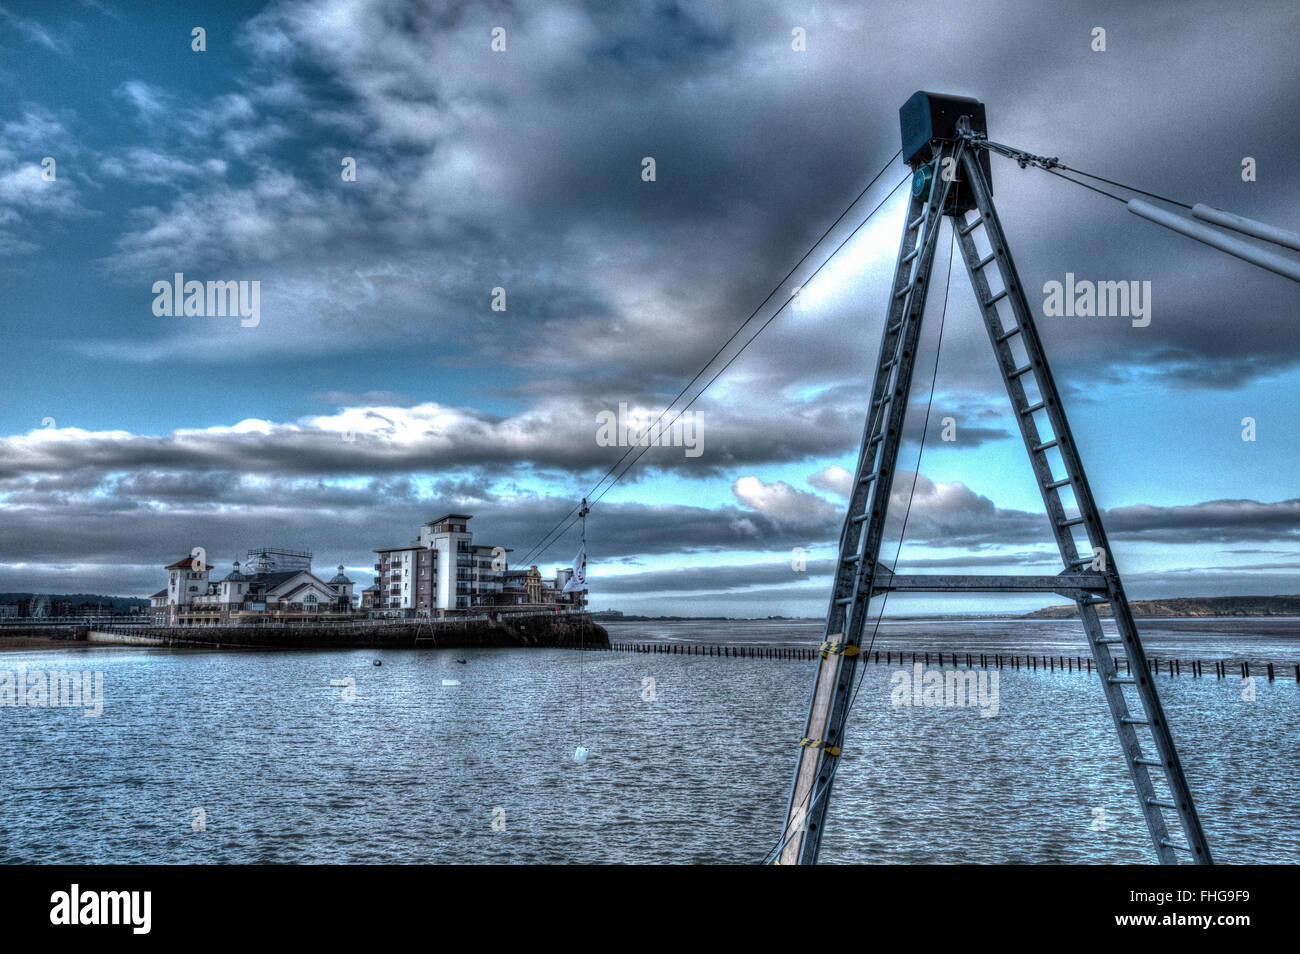 Knightstone island and Marine Lake Weston-super-Mare Somerset England uk with zip wire in HDR - Stock Image